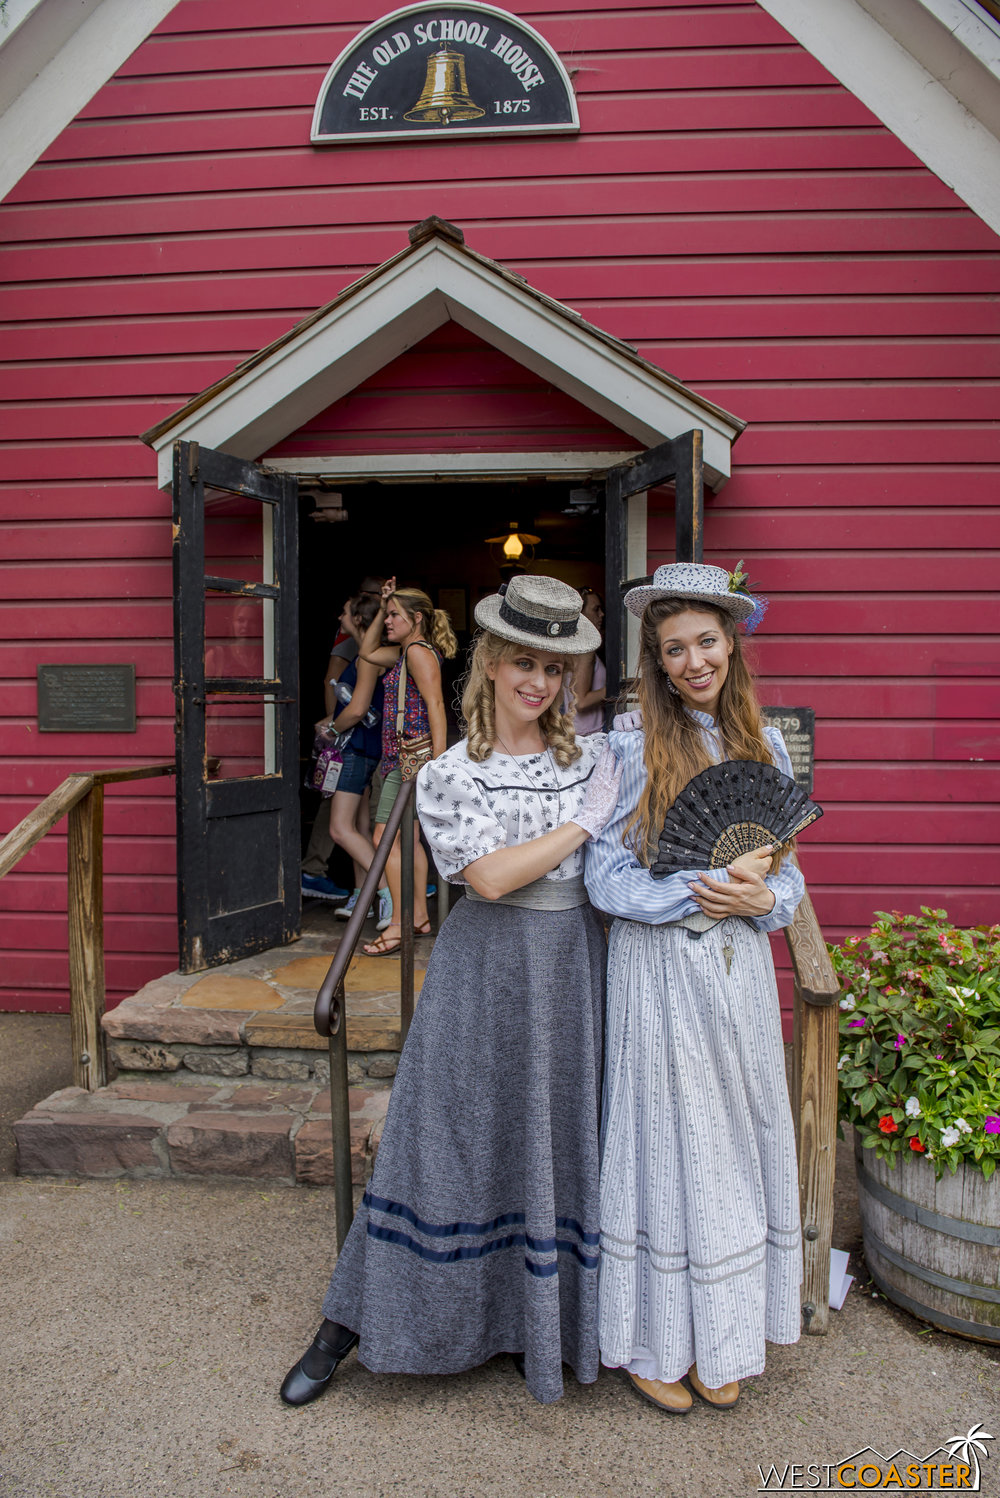 Schoolteacher Abbie McBride (left) and Miss Sierra pose outside the Calico Schoolhouse.